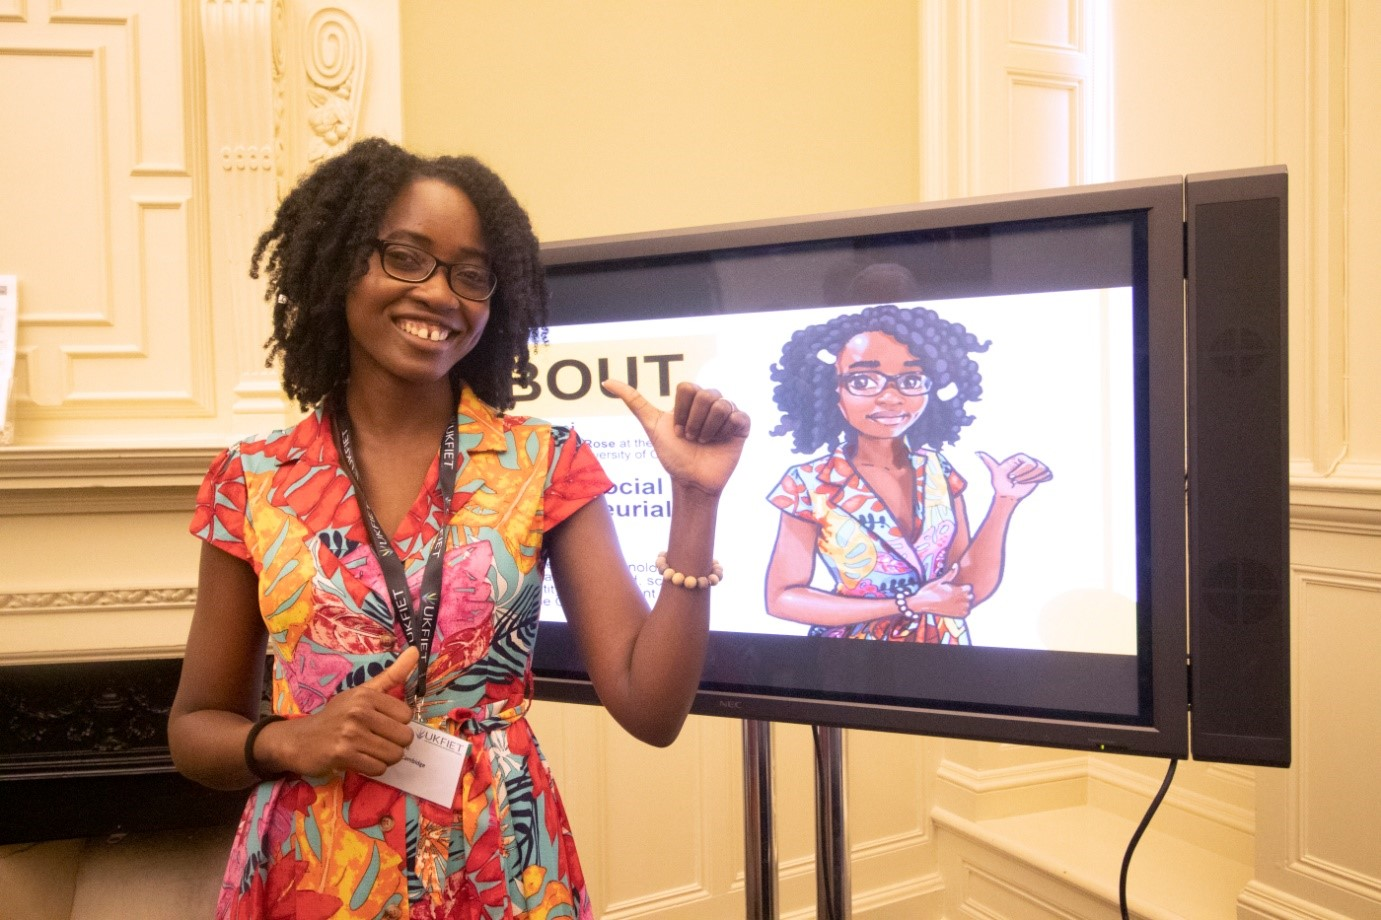 REAL at UKFIET: Reflections from Kalifa Damani of her conference experience